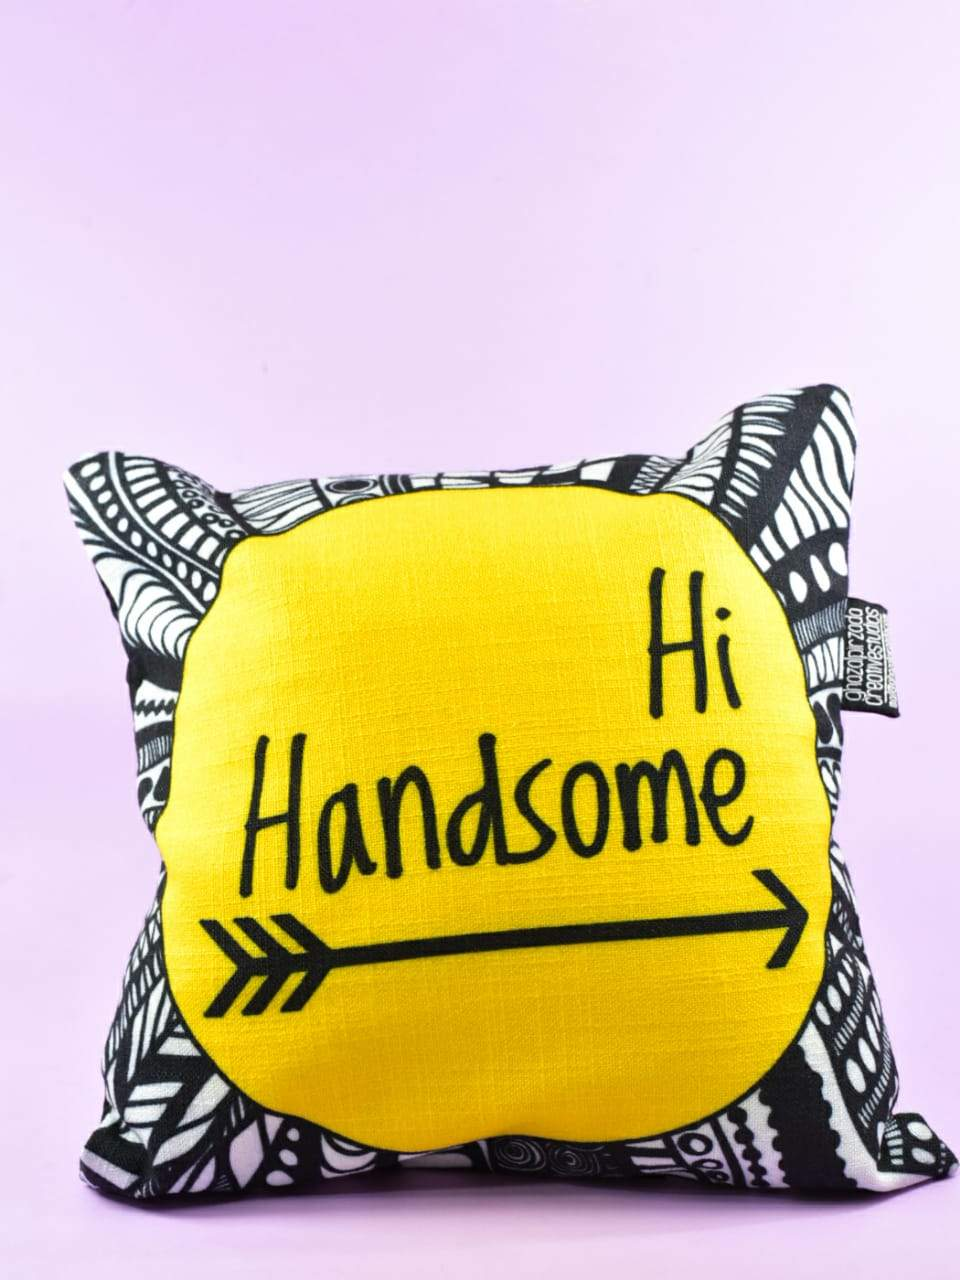 Hi Handsome - Cushion Cover